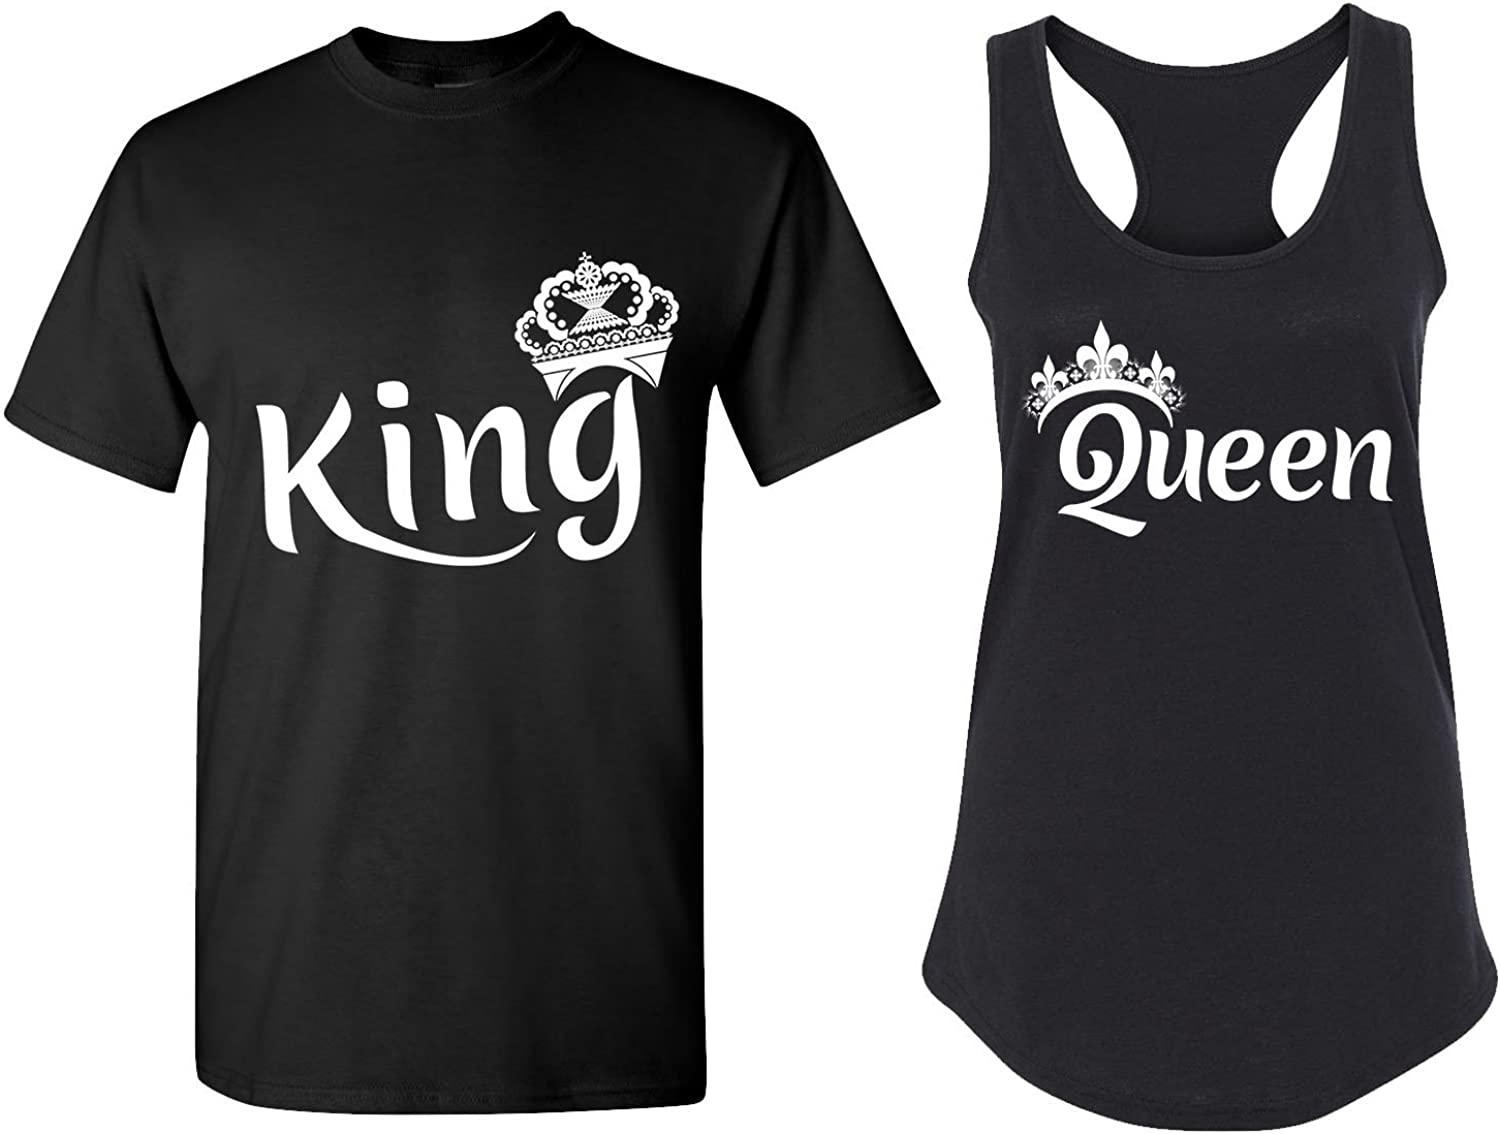 Matching Tank Tops for Couples King and Queen Shirts His and Hers New White